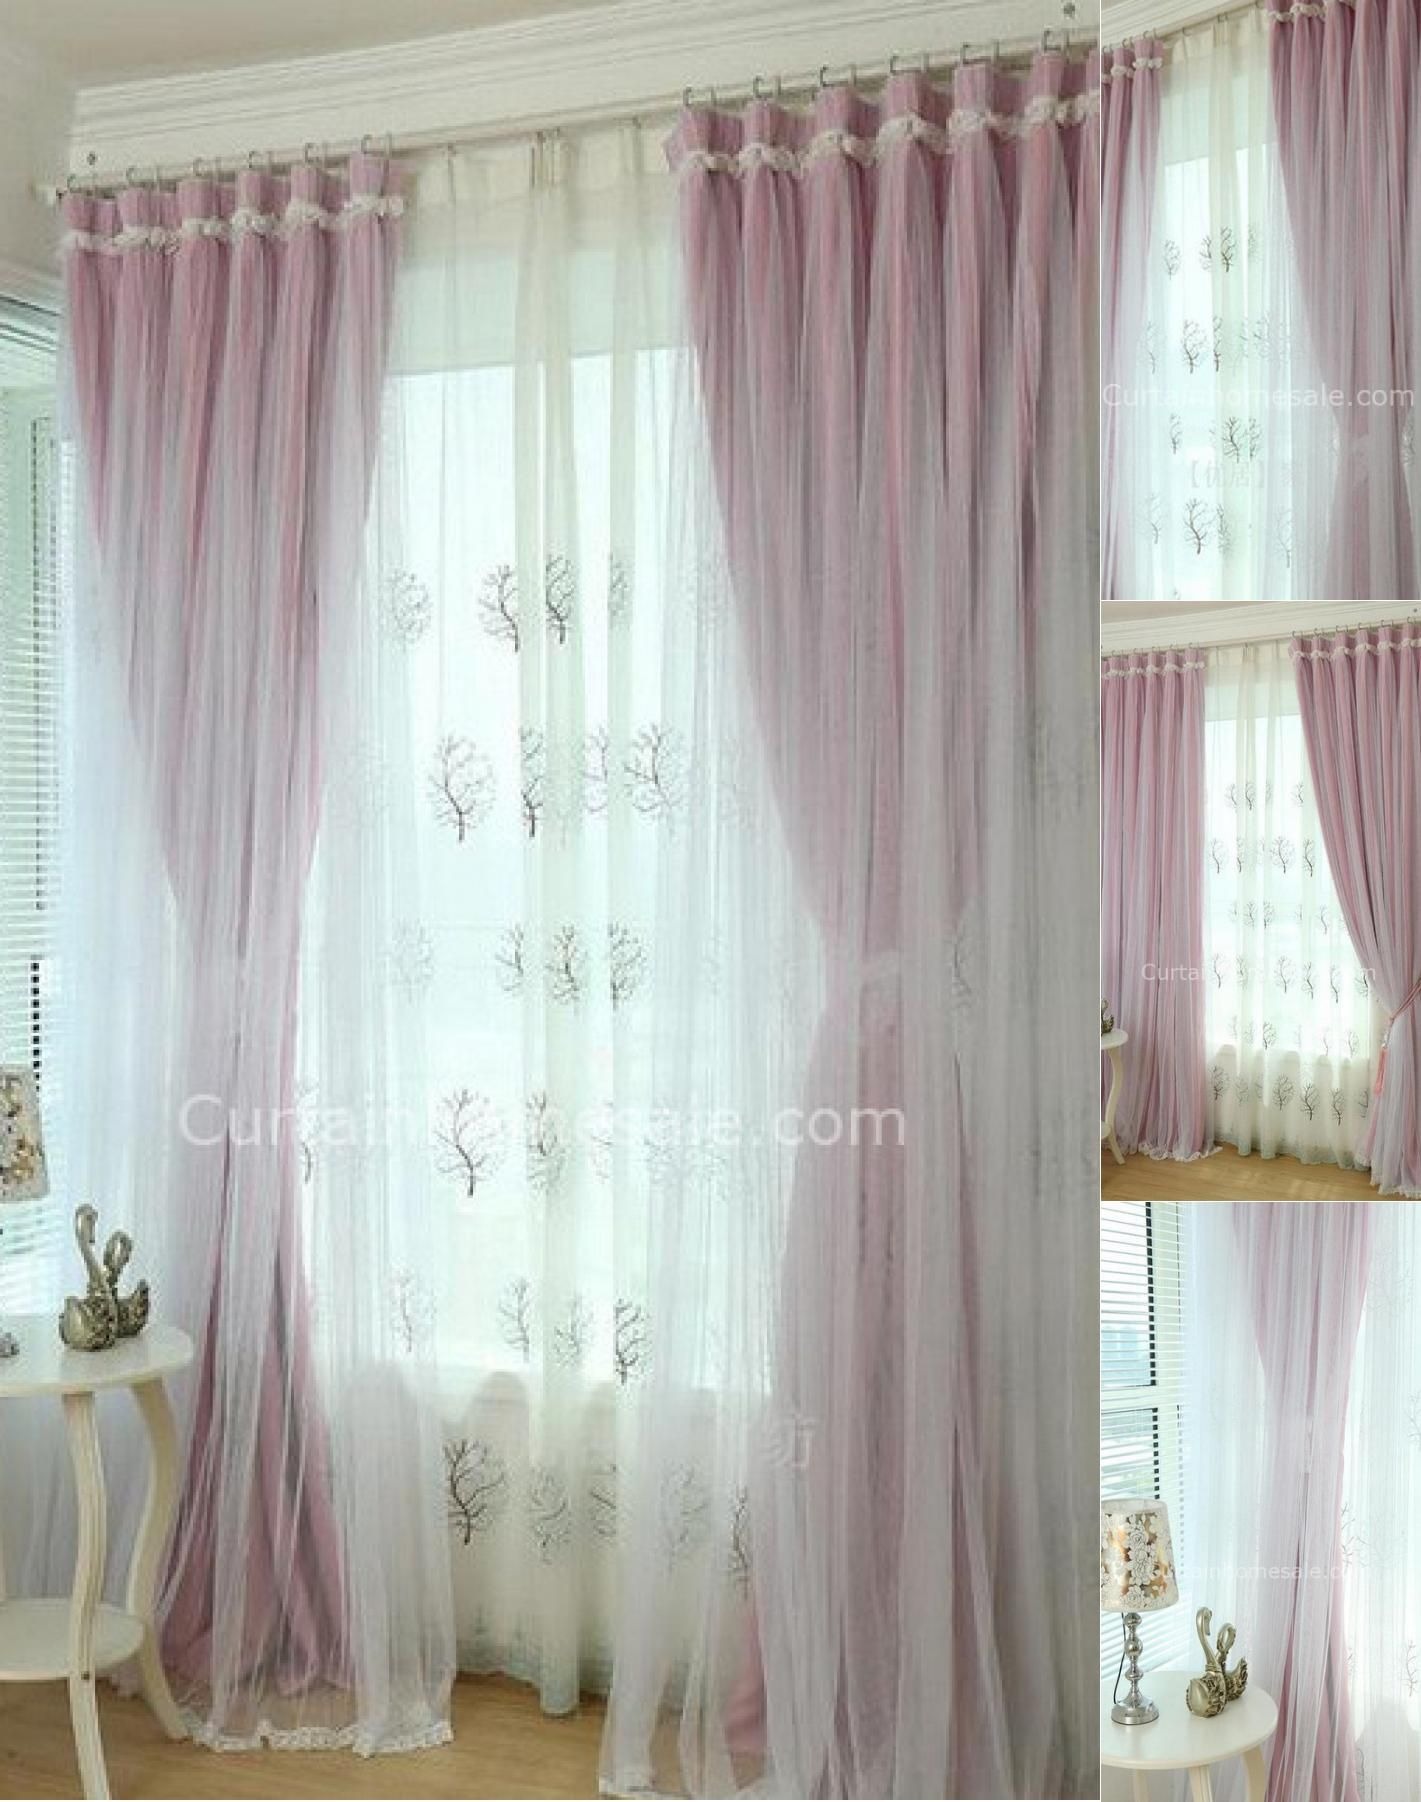 in girl beautiful room rooms ideas curtain of pictures design photos girls purple charming for bedroom luxury floor laminated decoration curtains home little